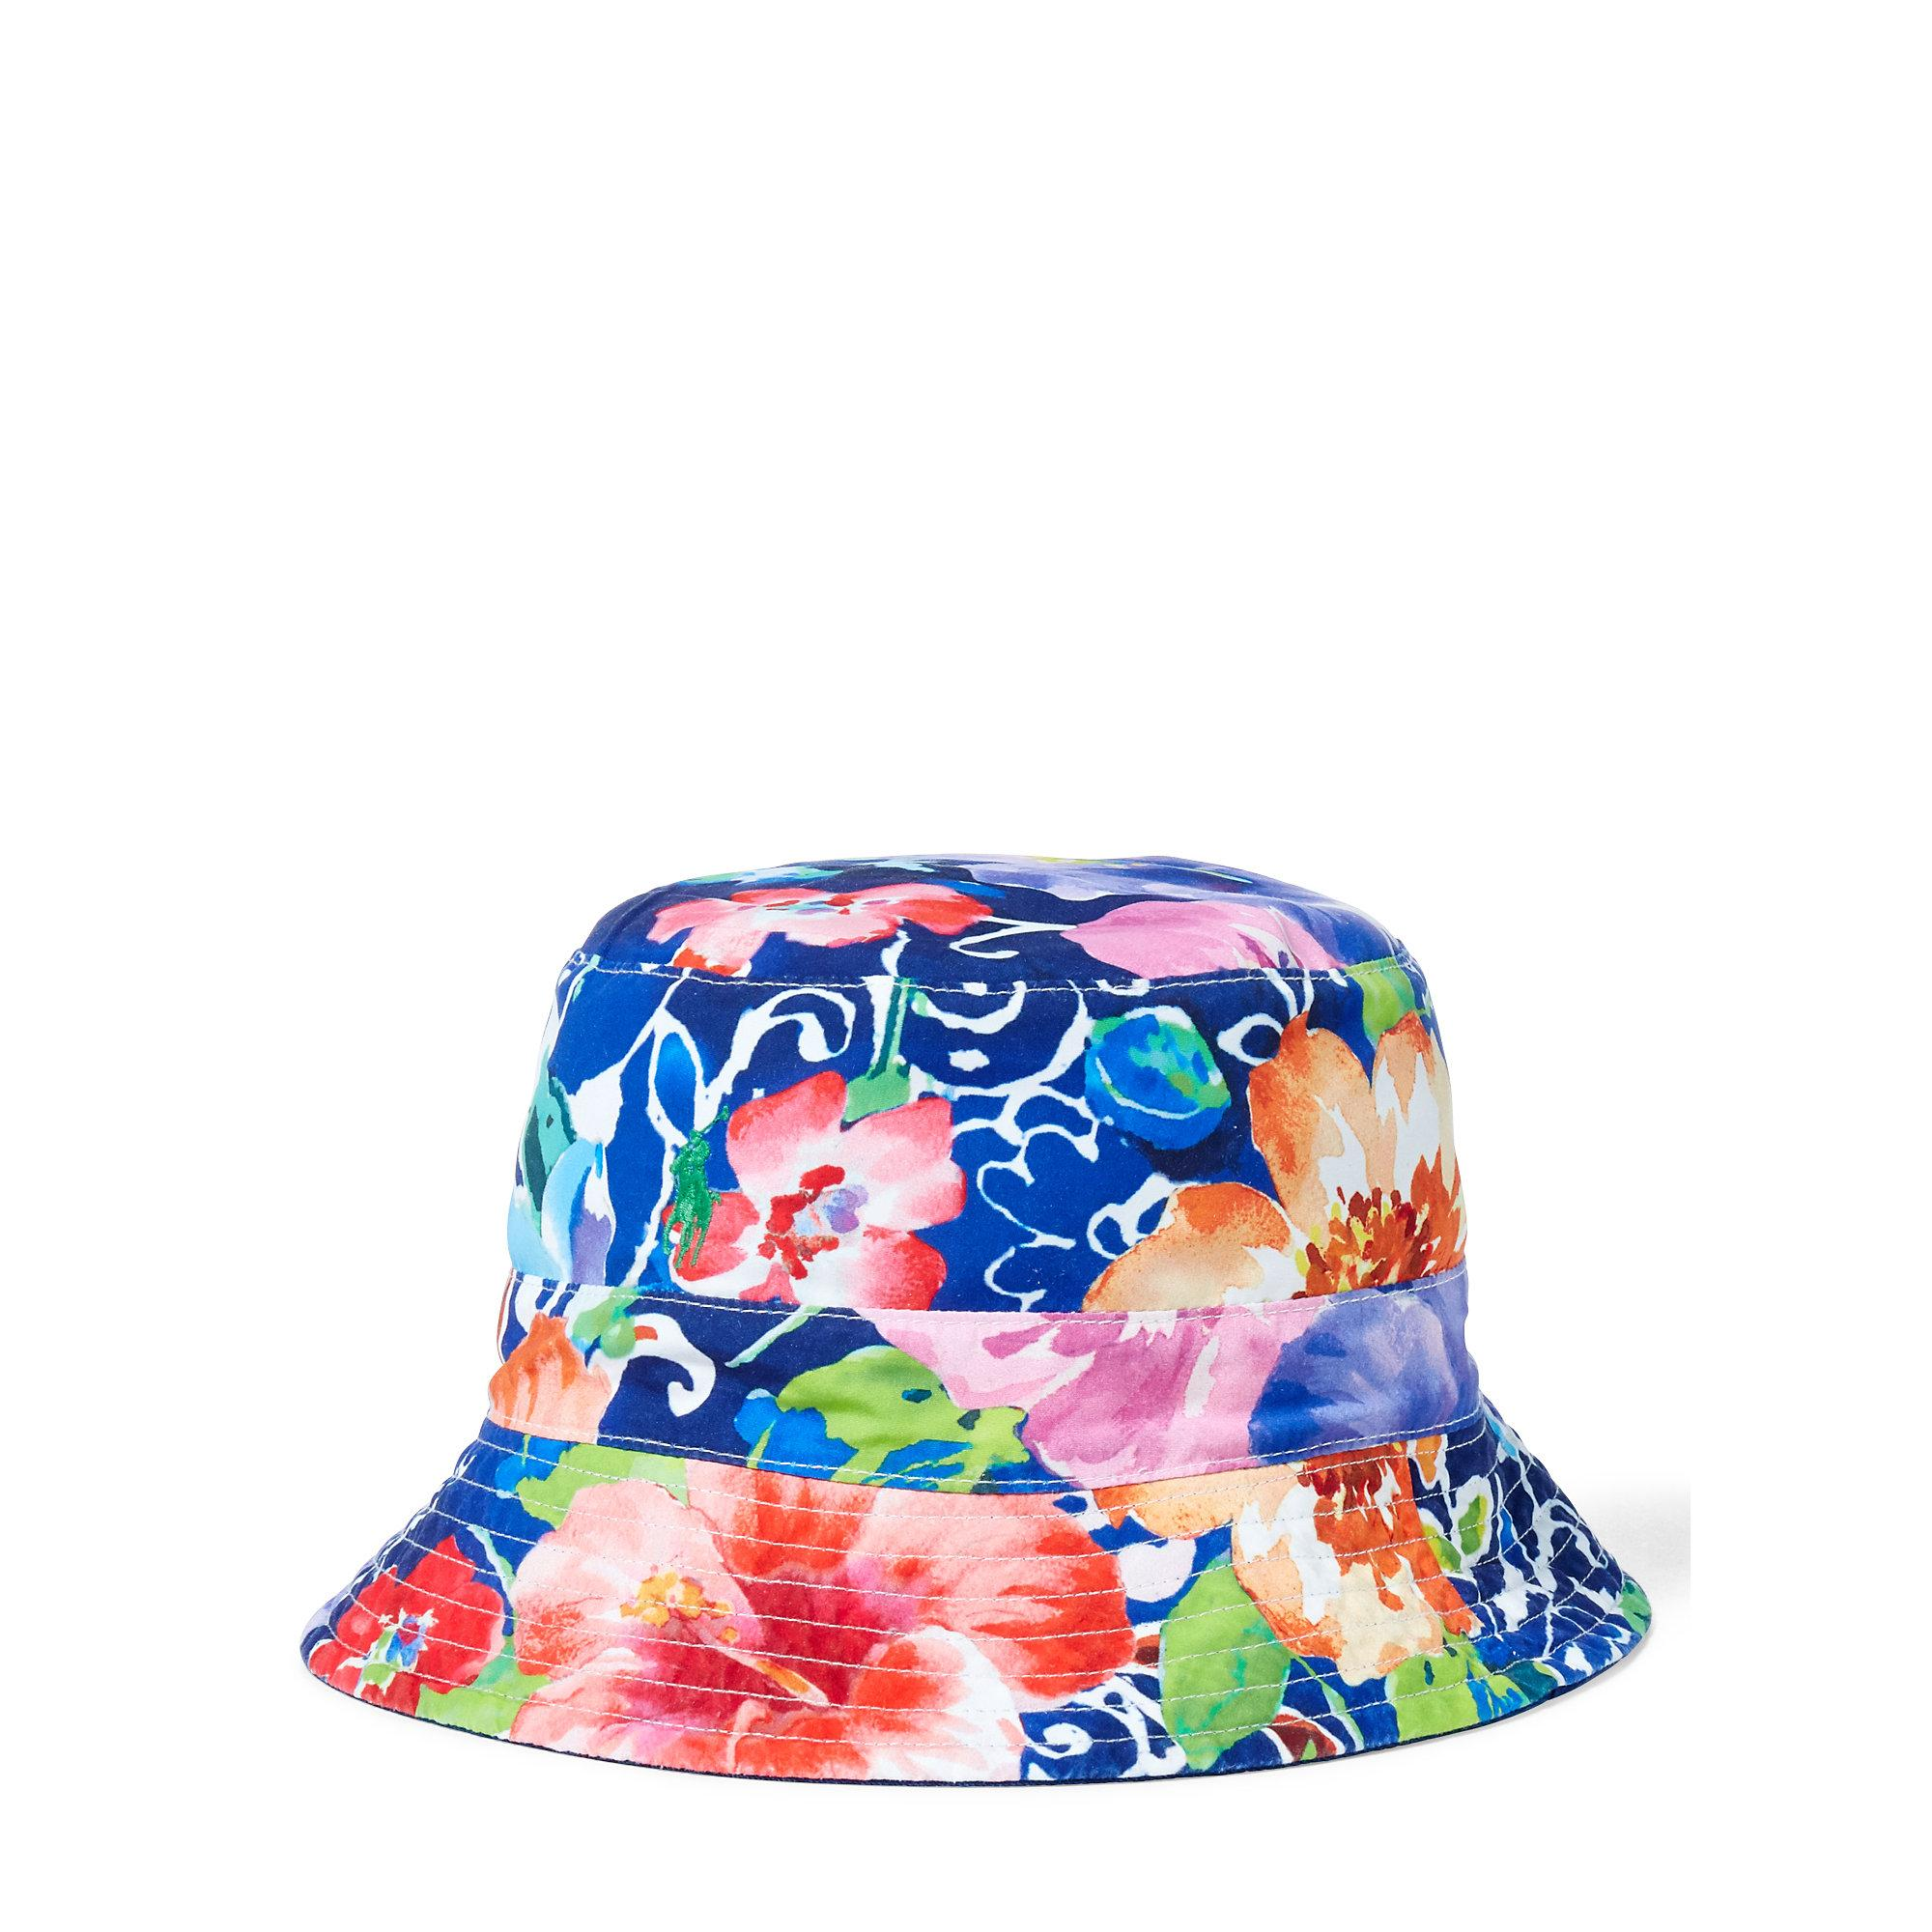 b7ccbca74a5 ... Lyst - Polo Ralph Lauren Reversible Chino Bucket Hat in Blue for Men on  feet at ...